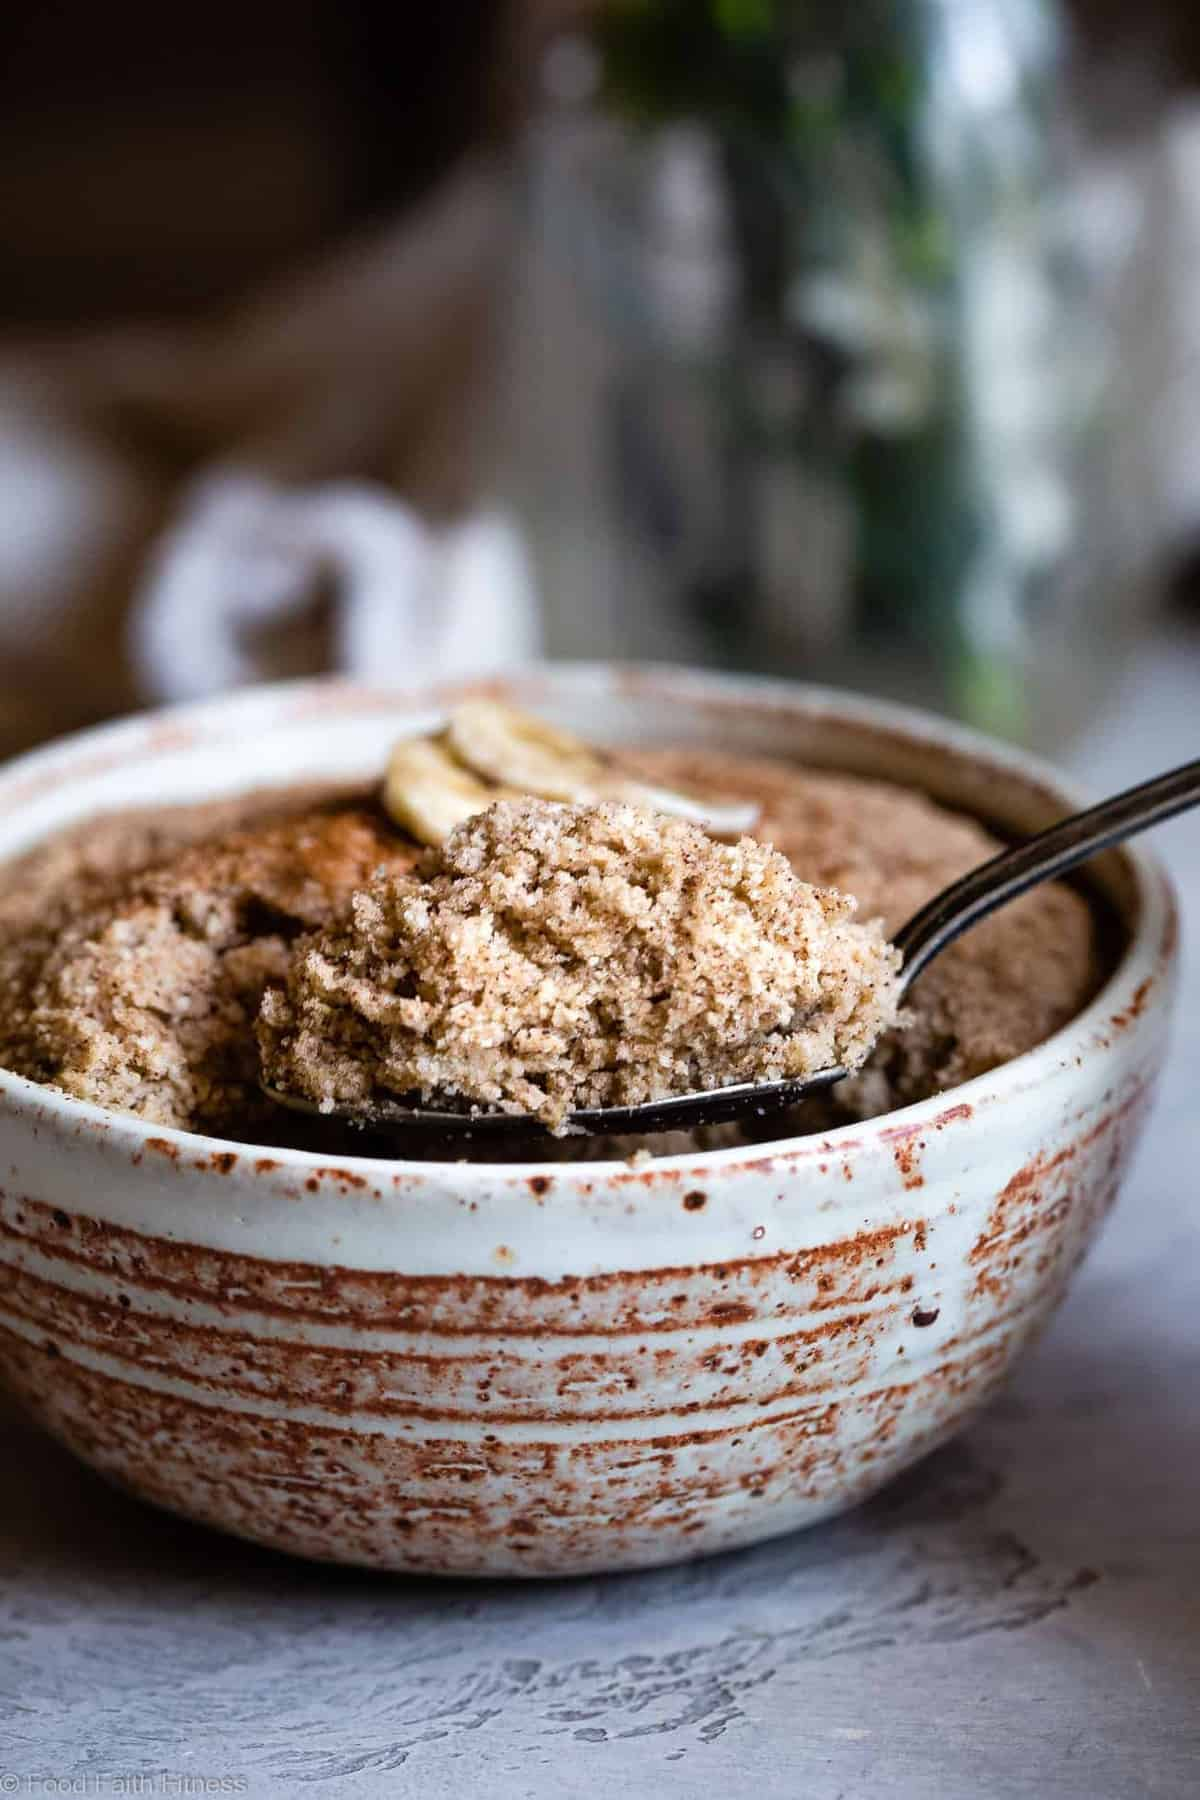 Easy Gluten Free Banana Bread Mug Cake - Want banana bread right now? Yes you do! Make this 5 minute, healthy, gluten free and paleo friendly banana bread in a mug! No waiting to cool nonsense! | #Foodfaithfitness | #Glutenfree #paleo #grainfree #bananabread #healthy